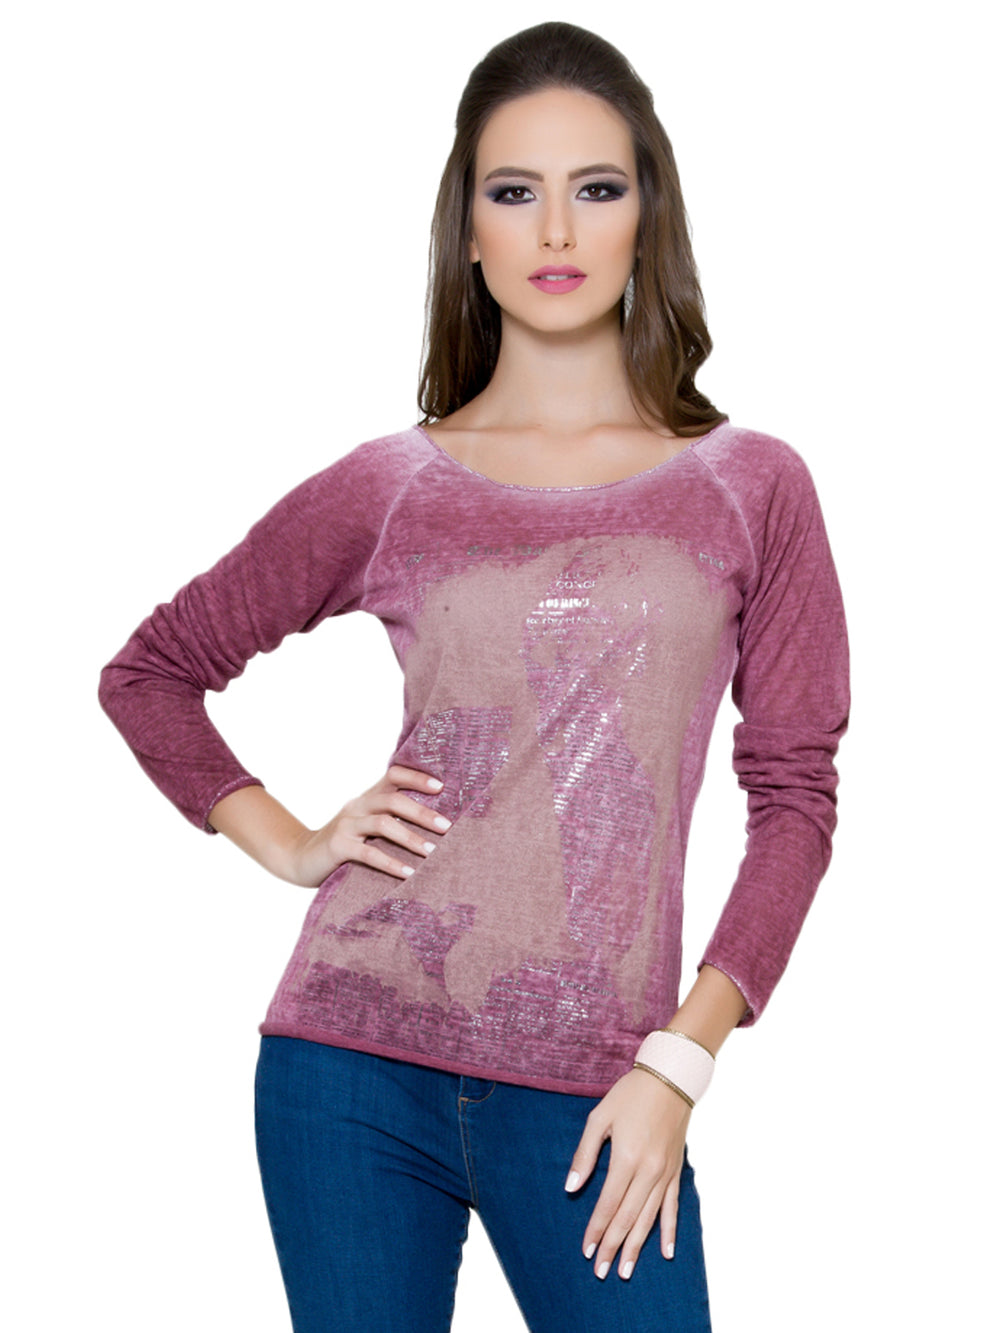 Maroon Long Sleeves Top, CJF - elilhaam.com